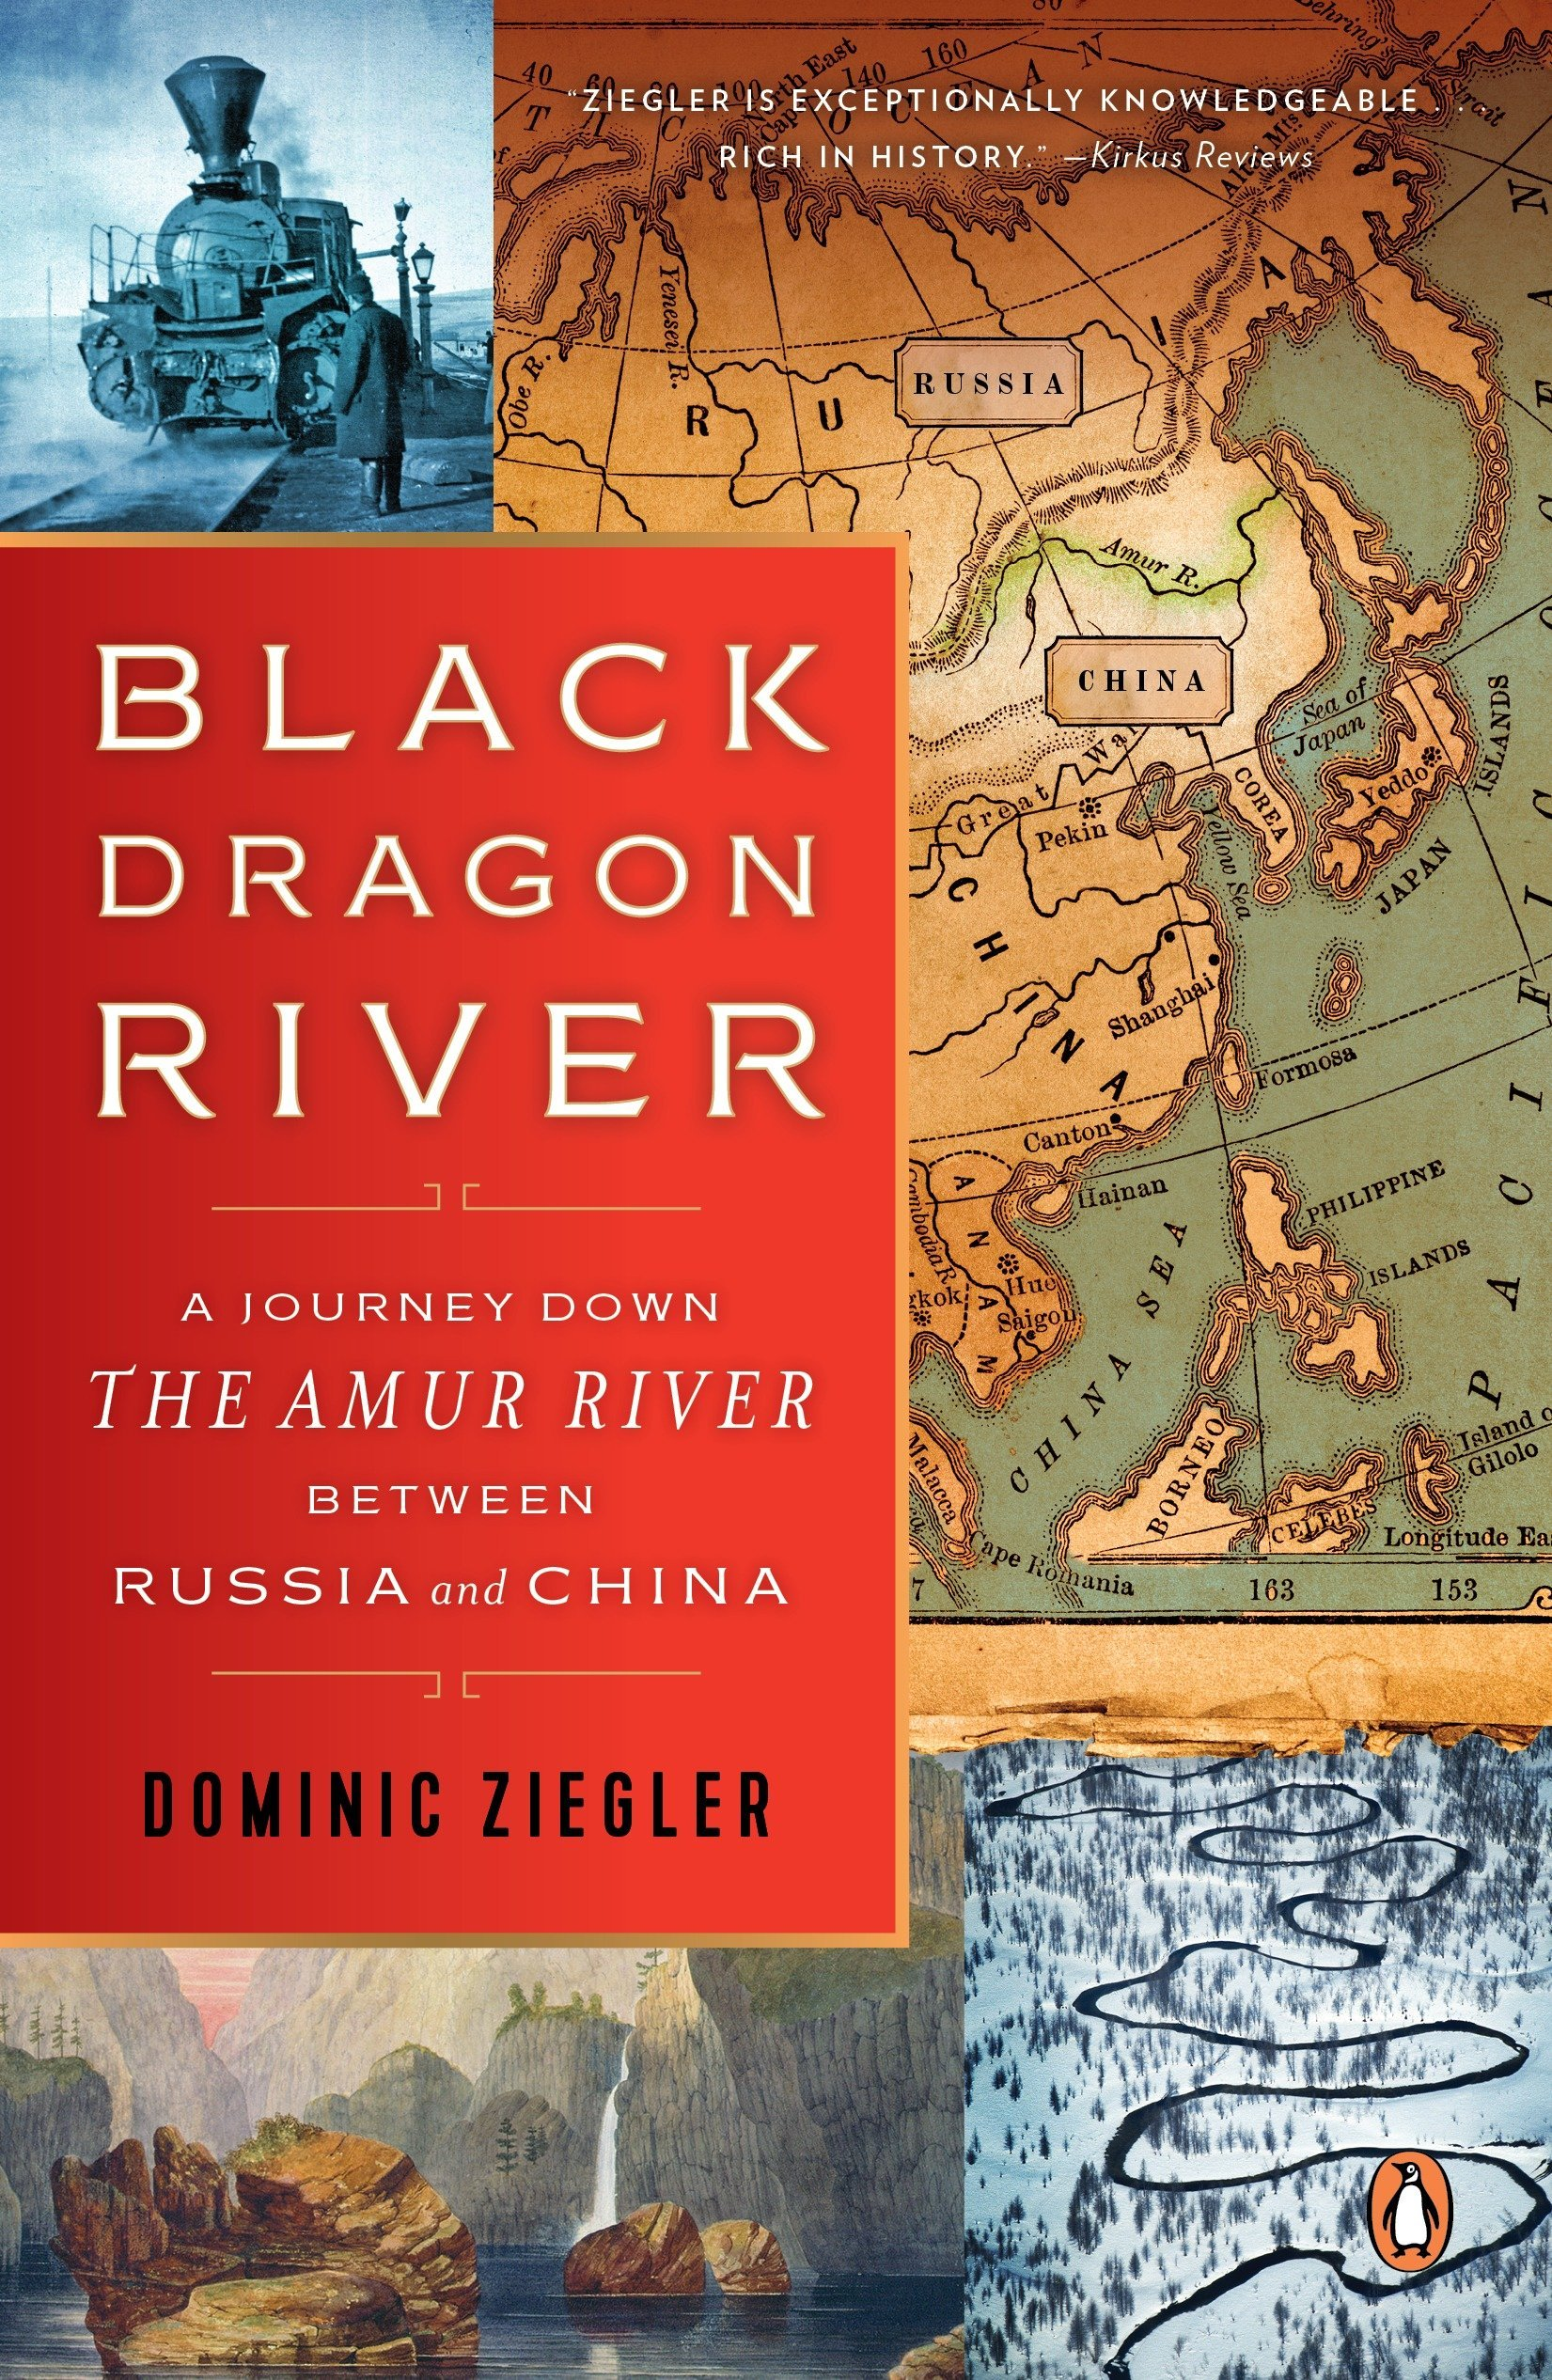 Black Dragon River: A Journey Down the Amur River Between Russia and on yangtze river on world map, baltic sea on world map, garonne river on world map, appenine mountains on world map, aral sea on world map, niger river on world map, lake victoria on world map, arno river on world map, madeira river on world map, himalayas on world map, lena river on world map, indus river on world map, arctic ocean on world map, limpopo river on world map, salween river on world map, sahara desert on world map, yellow sea on world map, ganges river on world map, parana river on world map,